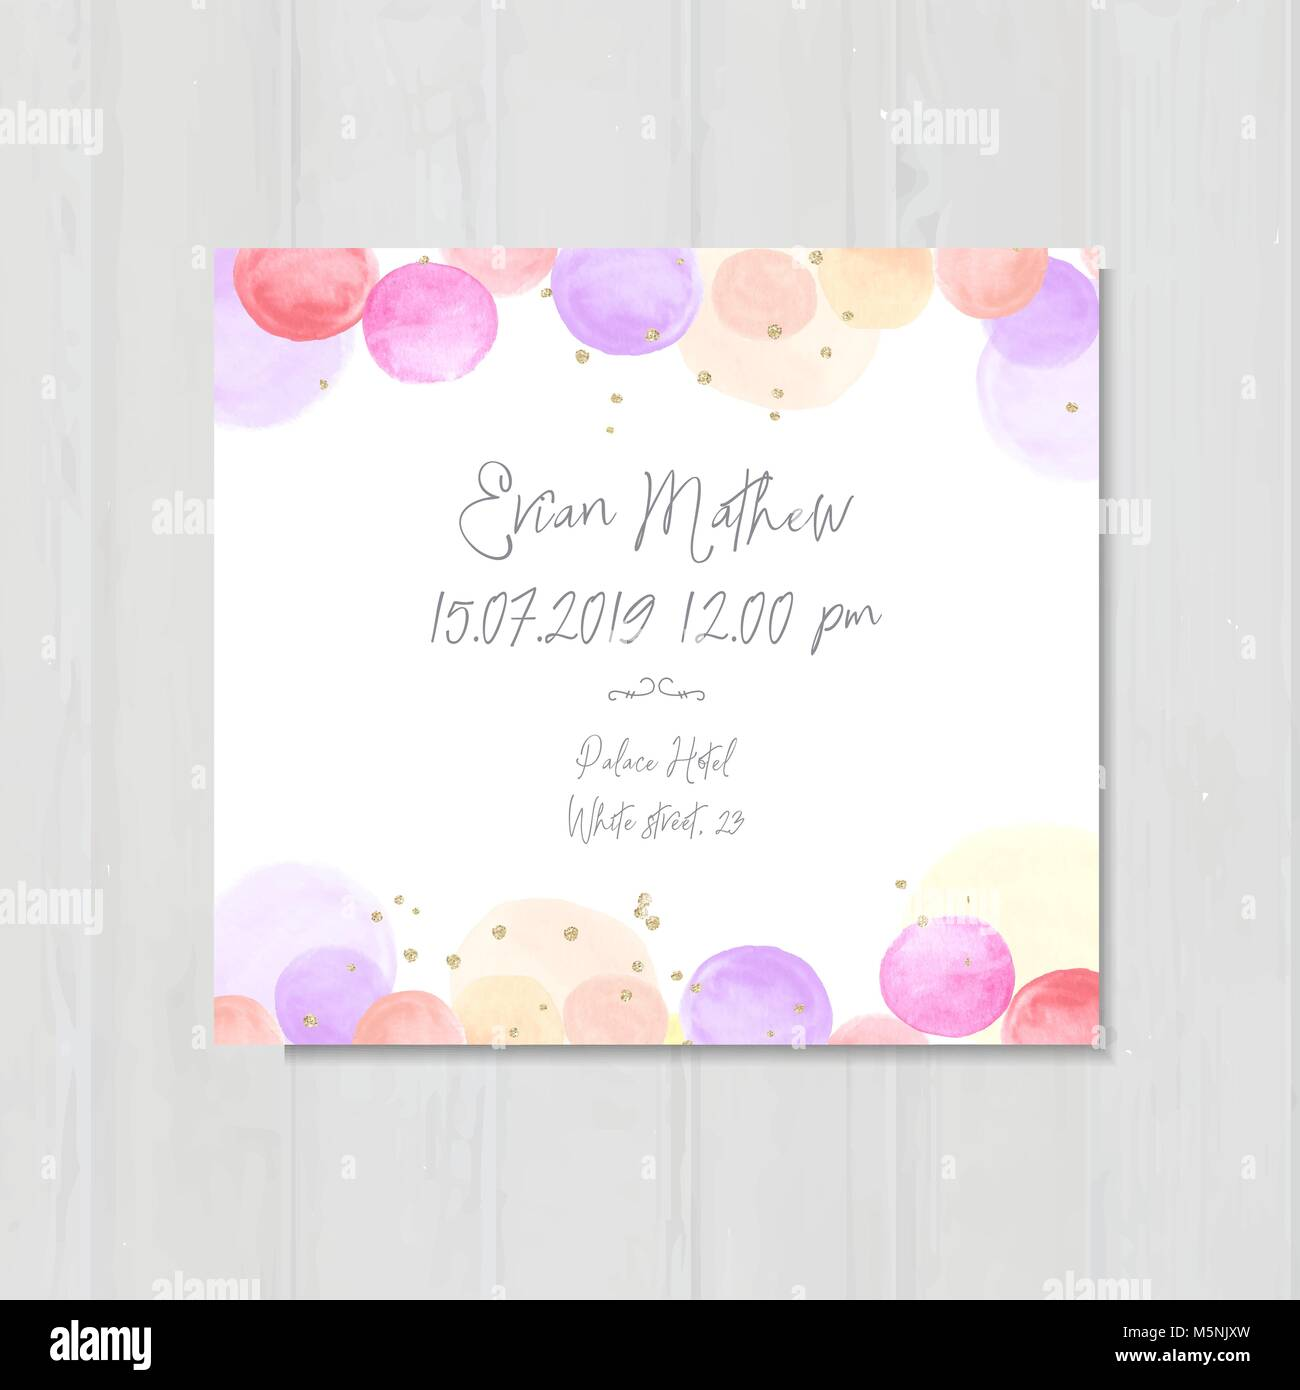 Baby shower invitation template, invite, card, watercolor bubbles ...